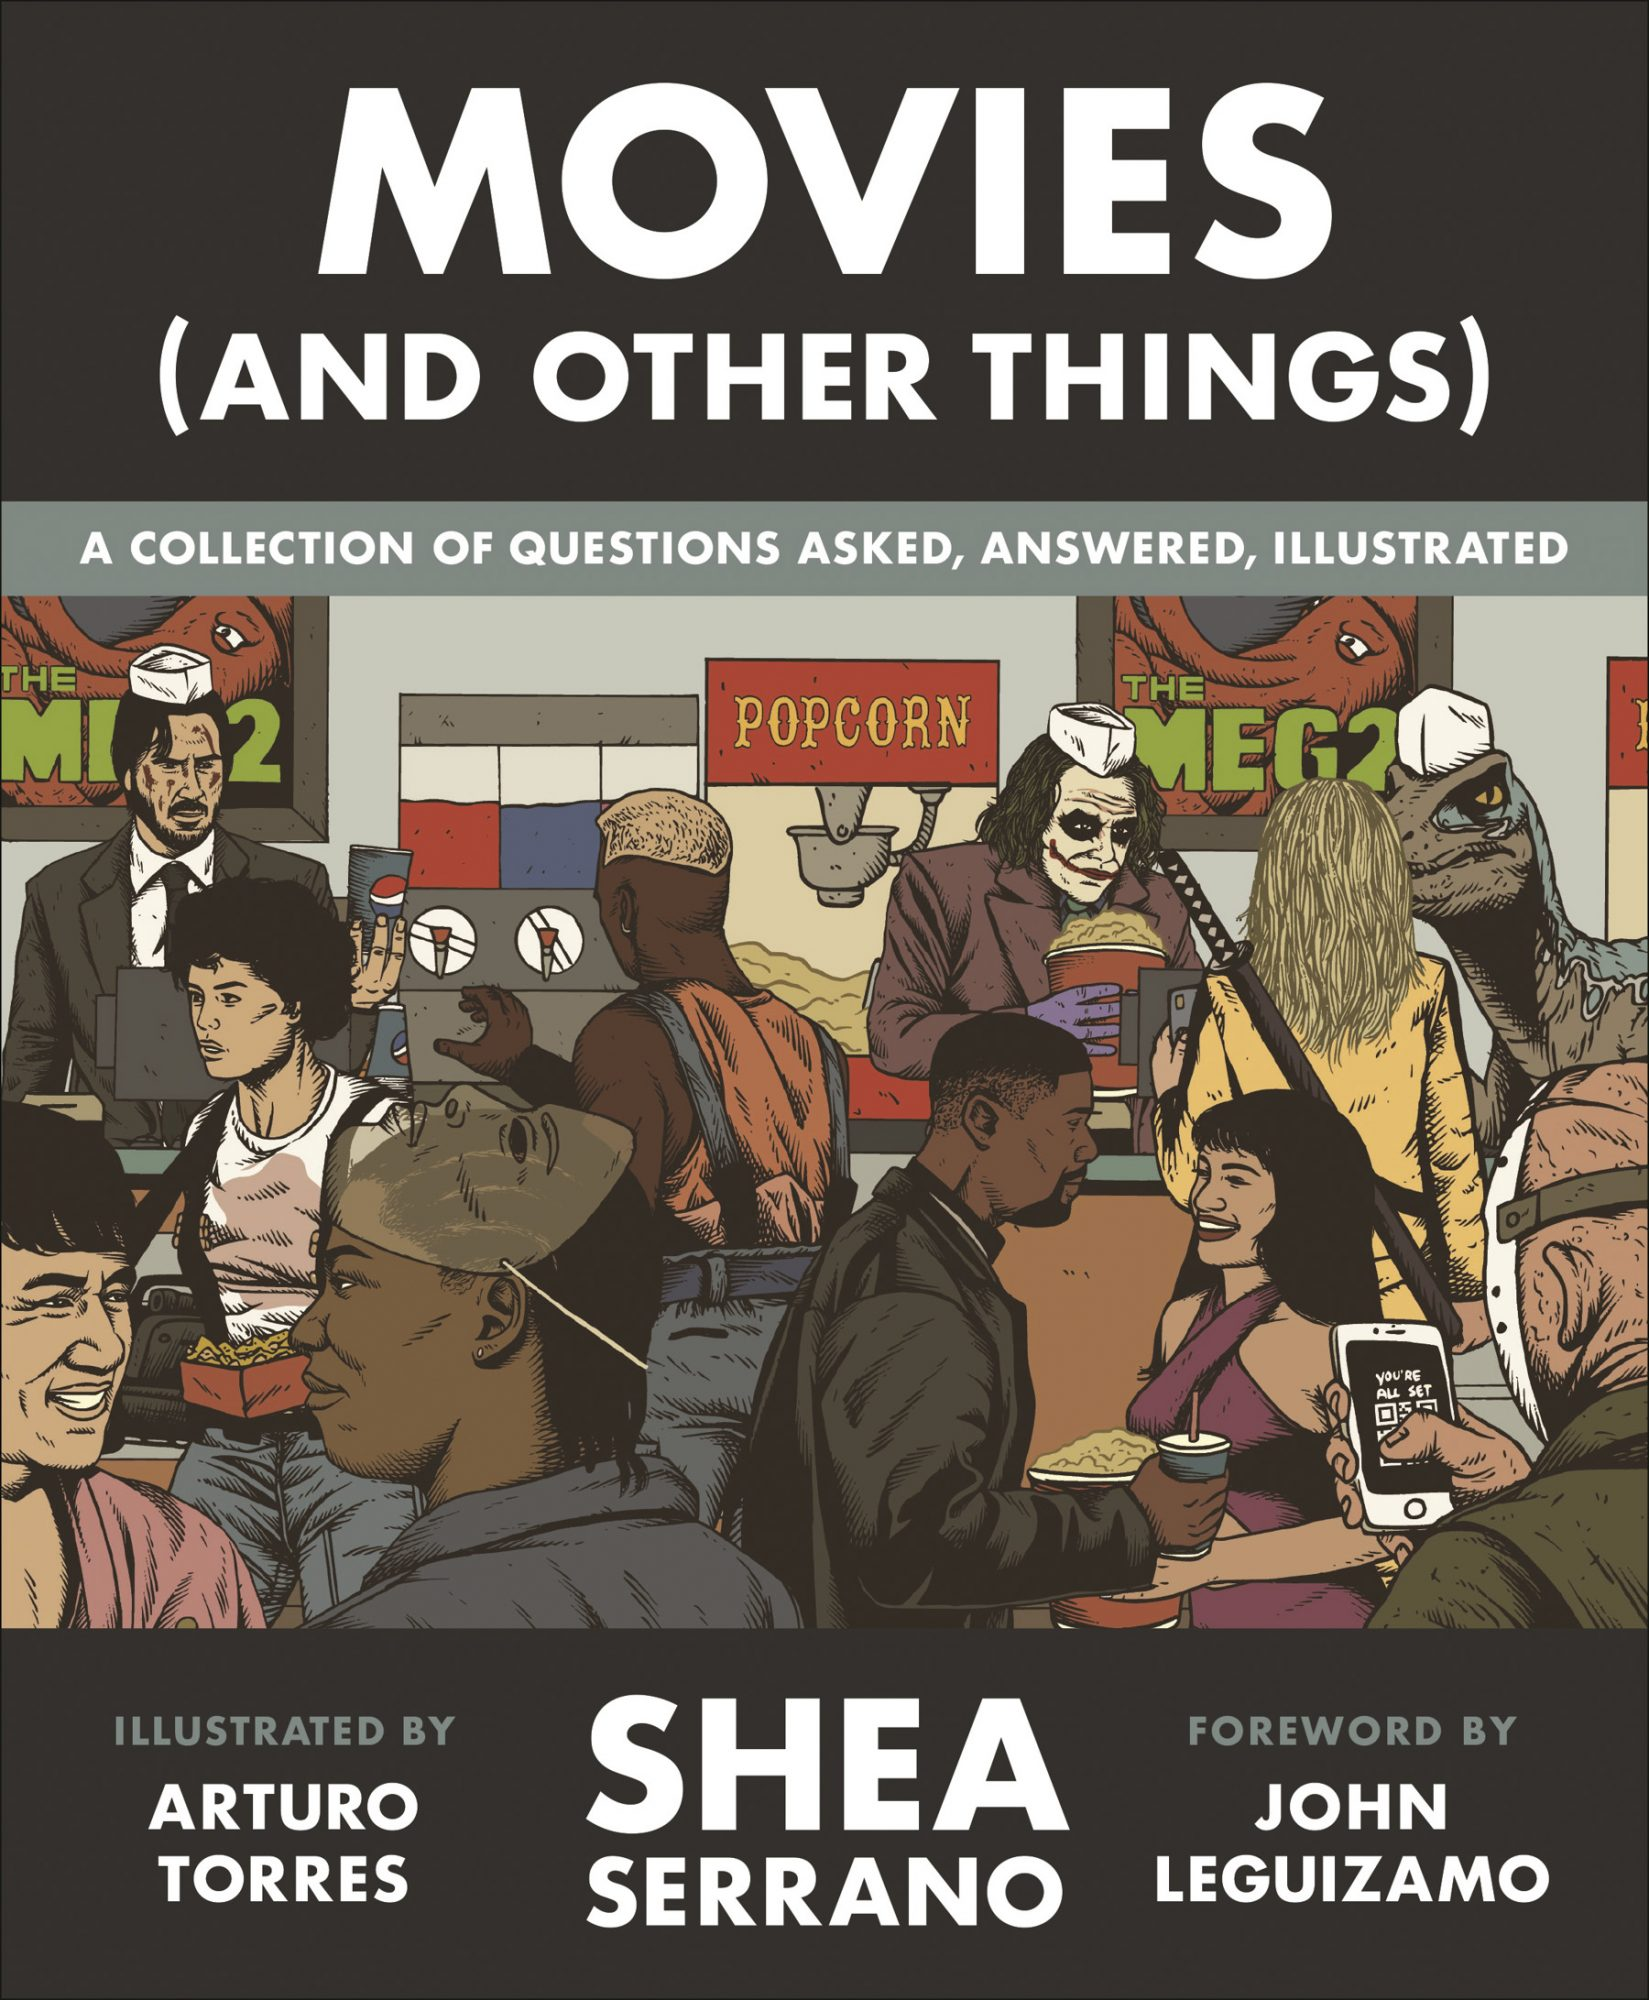 Movies (And Other Things) Book by Shea Serrano CR: Twelve